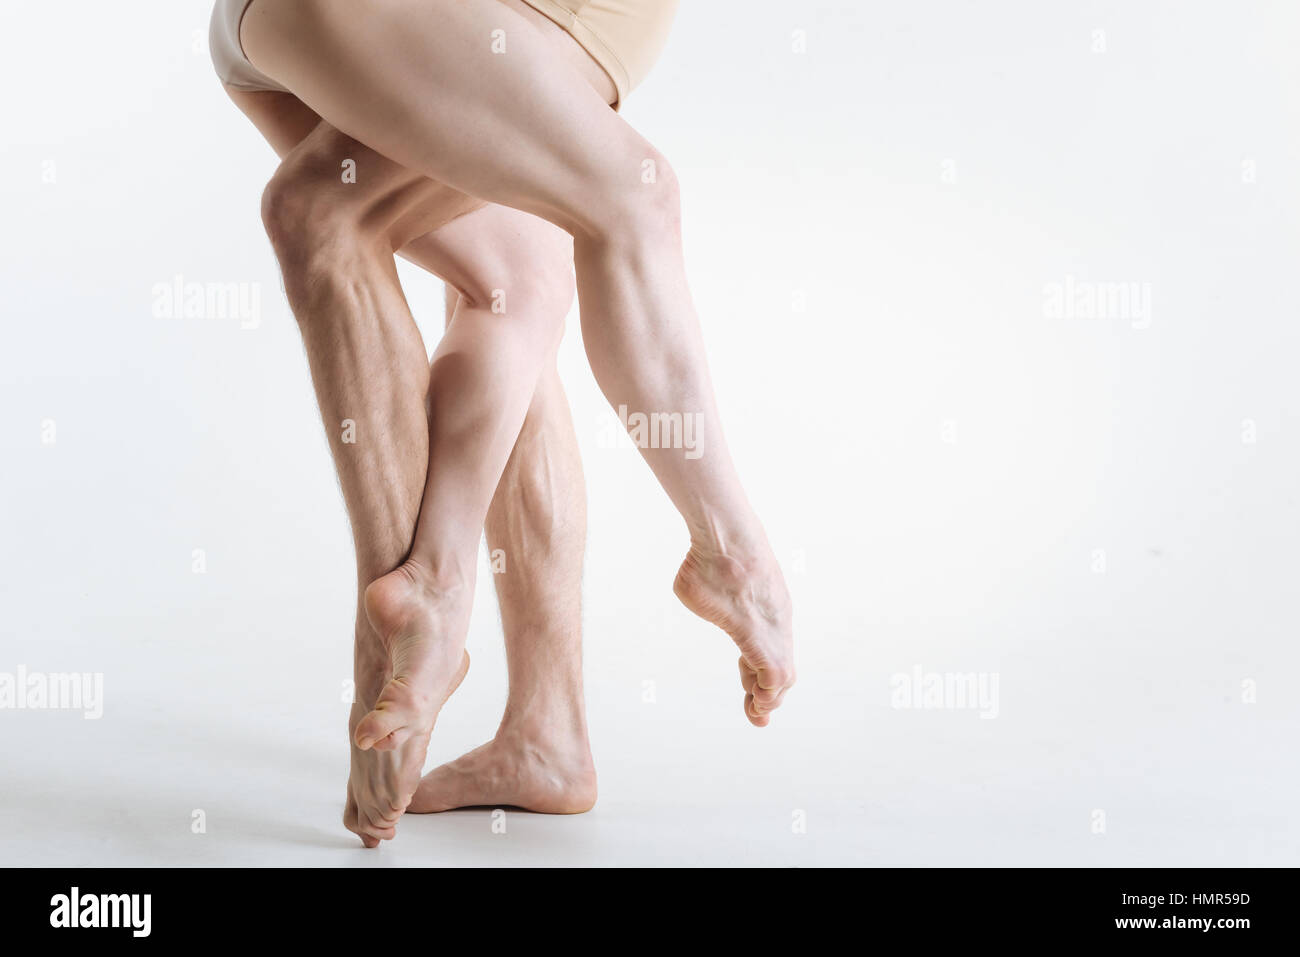 Strong gymnastics legs located in the white colored studio - Stock Image